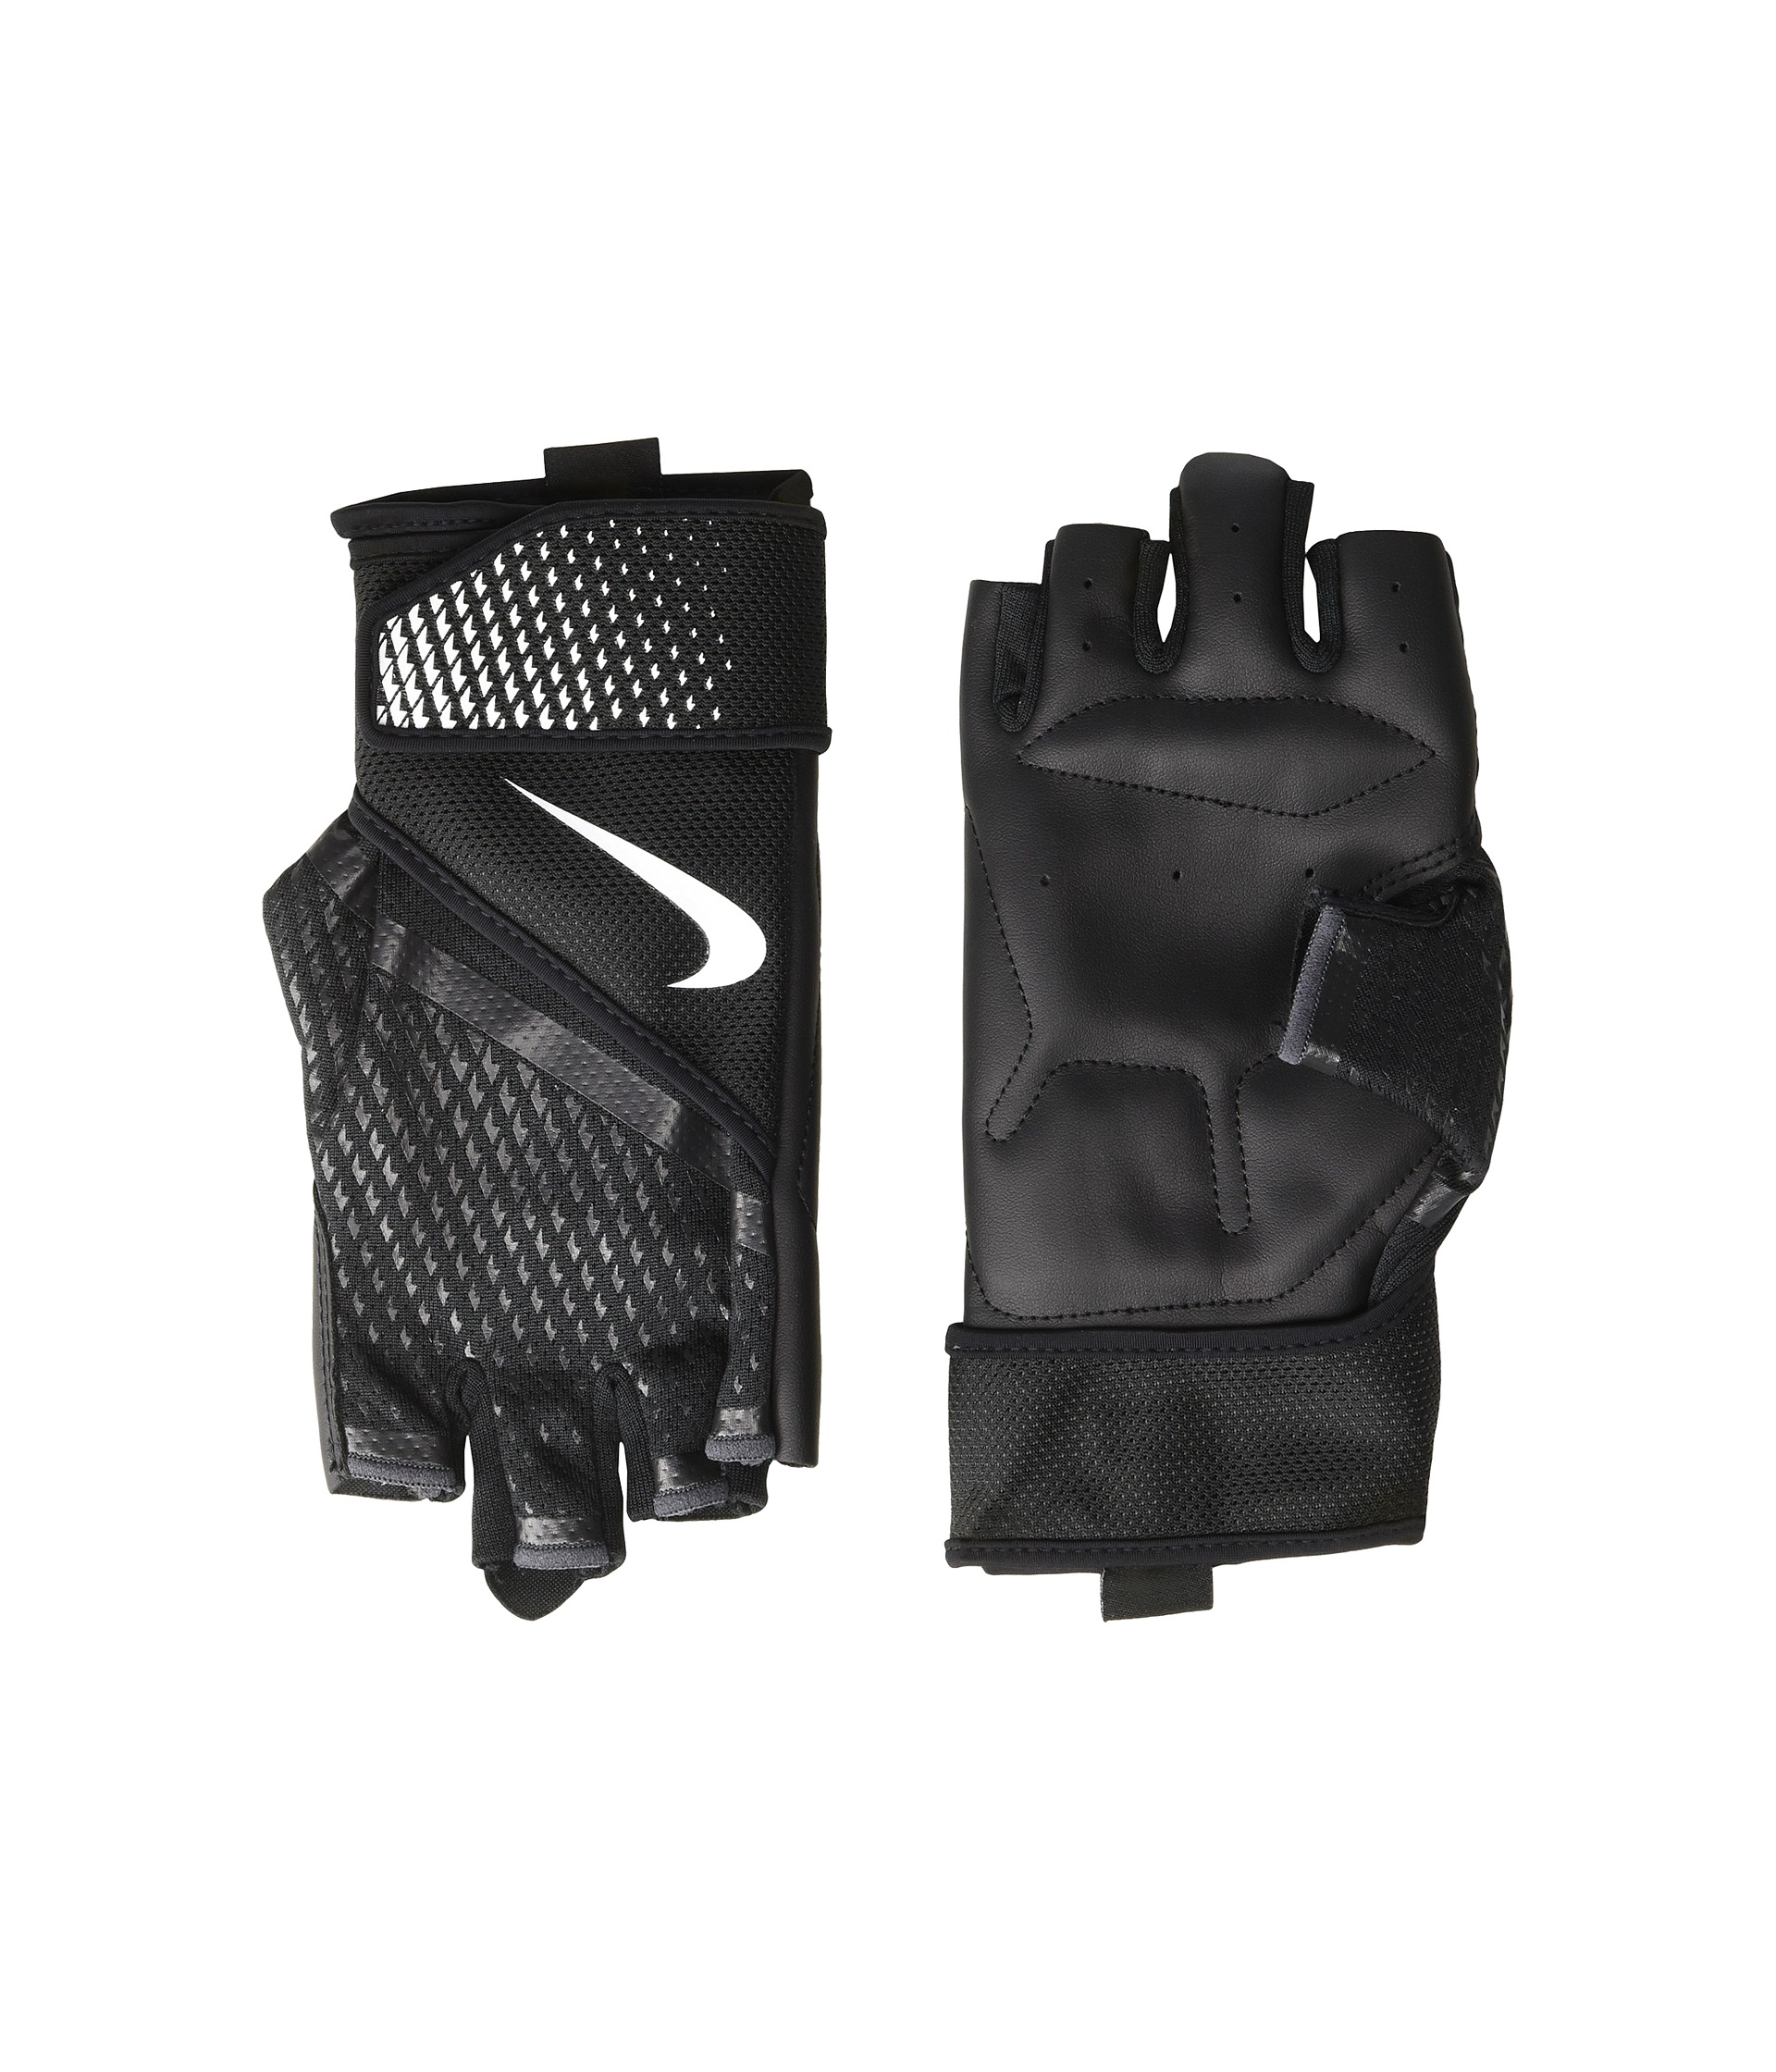 Nike Training Gloves Size Chart: Nike Destroyer Training Gloves At Zappos.com